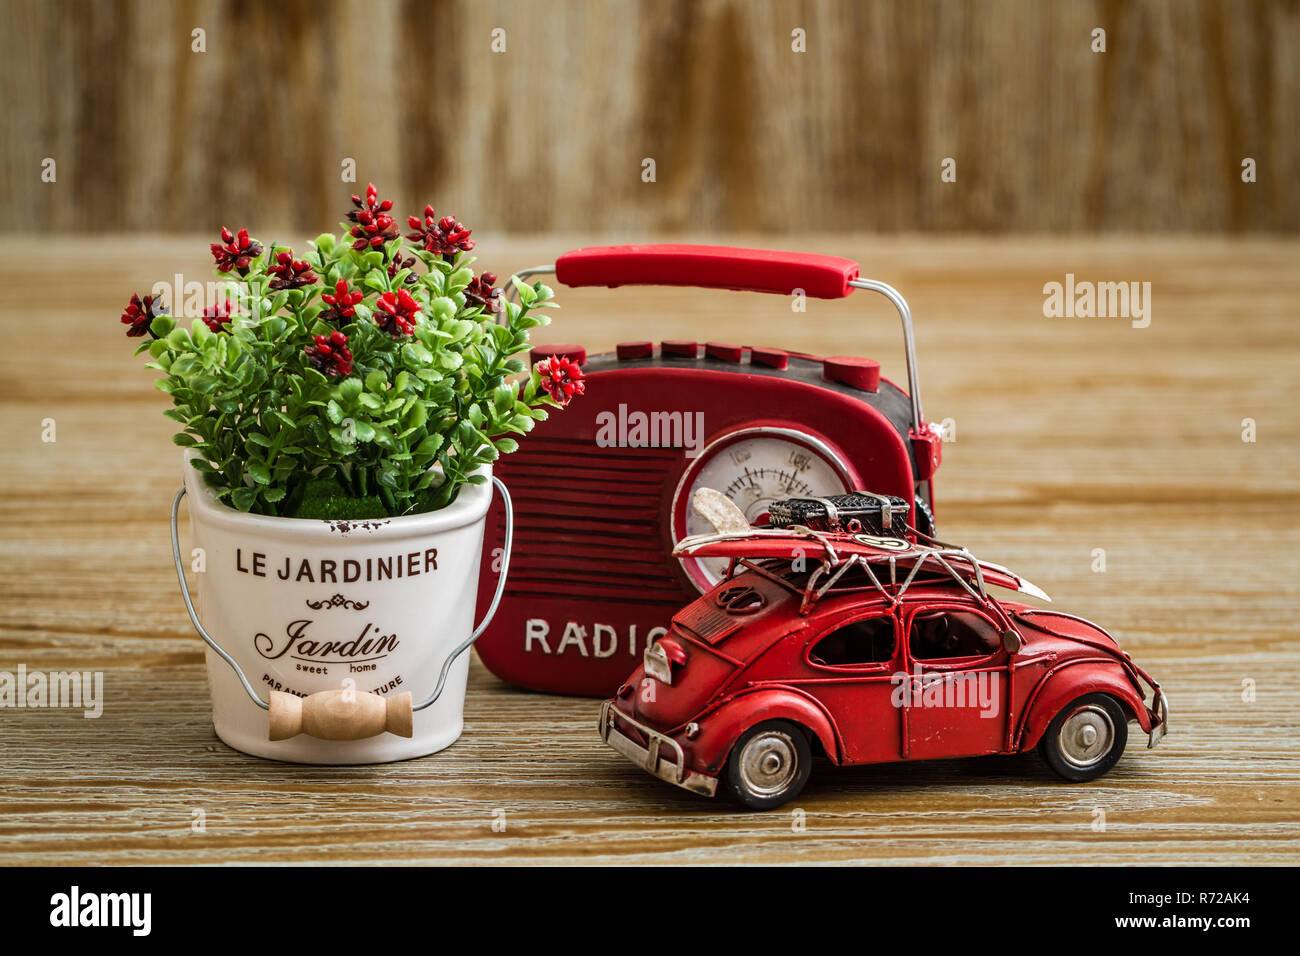 Artificial Flower, Vintage Radio and Red Toy Car on Wooden Background Stock Photo